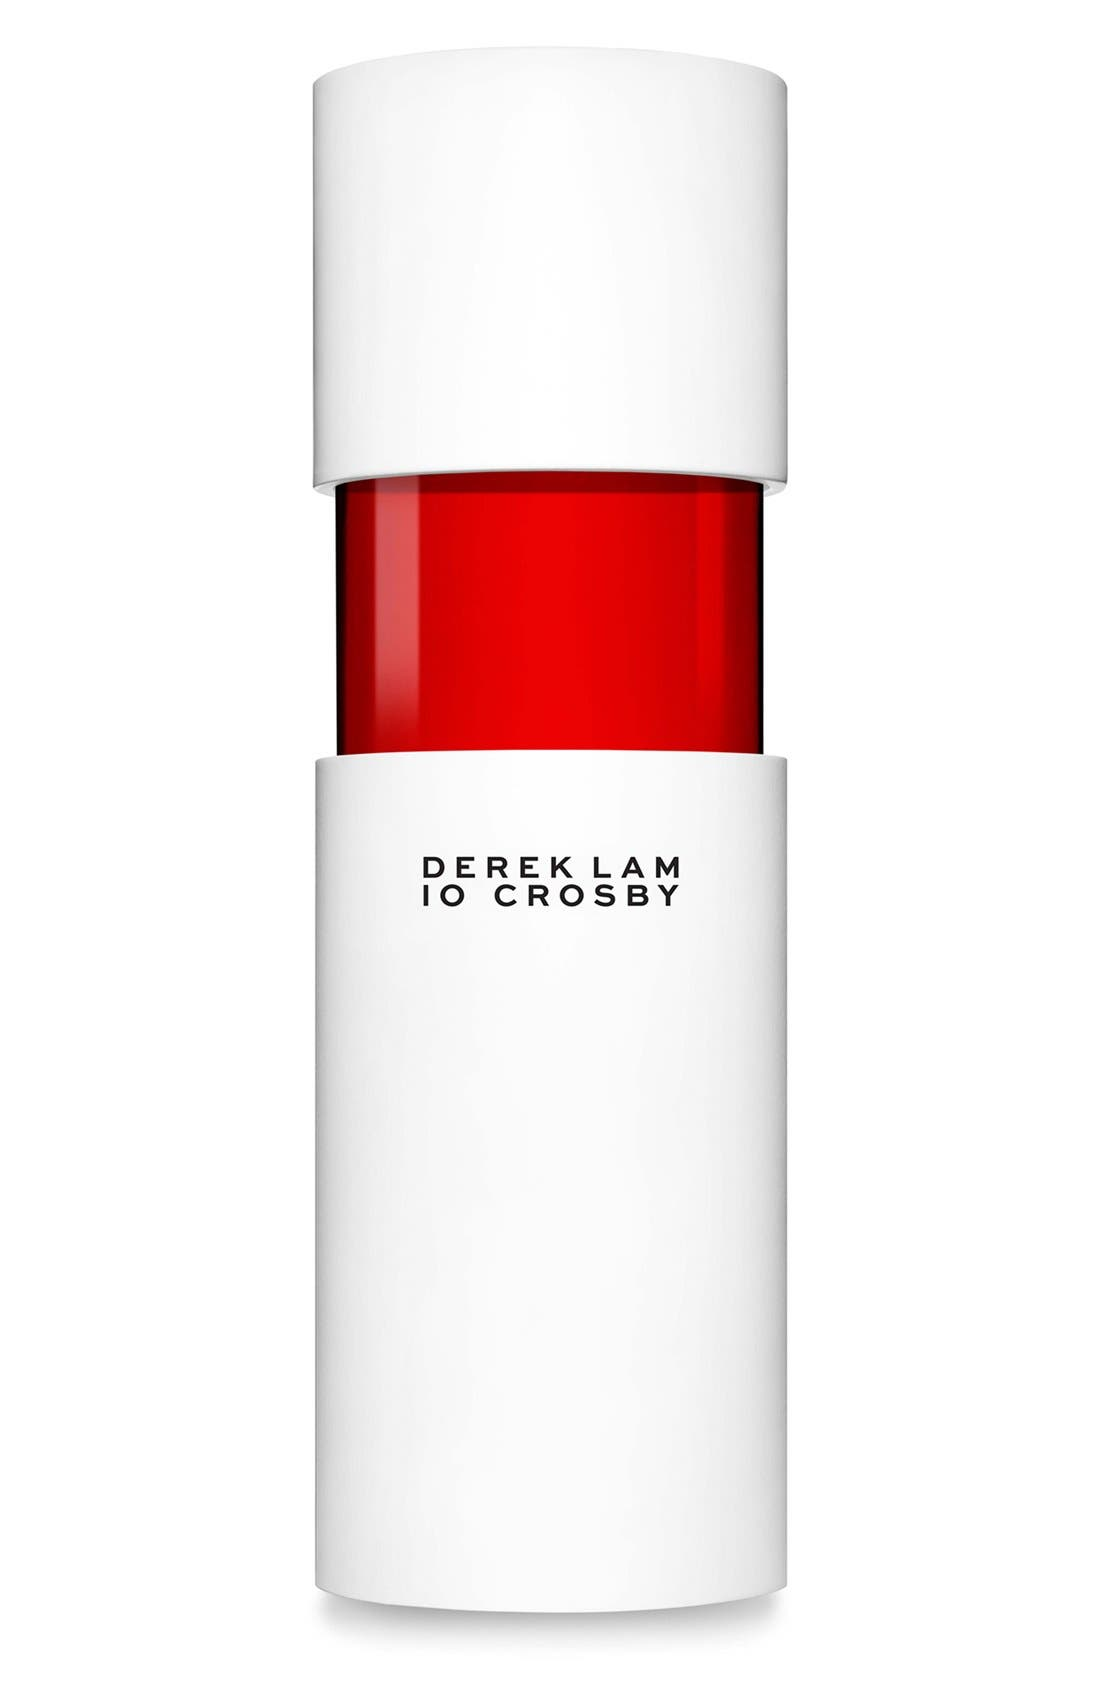 Derek Lam 10 Crosby '2AM Kiss' Eau de Parfum